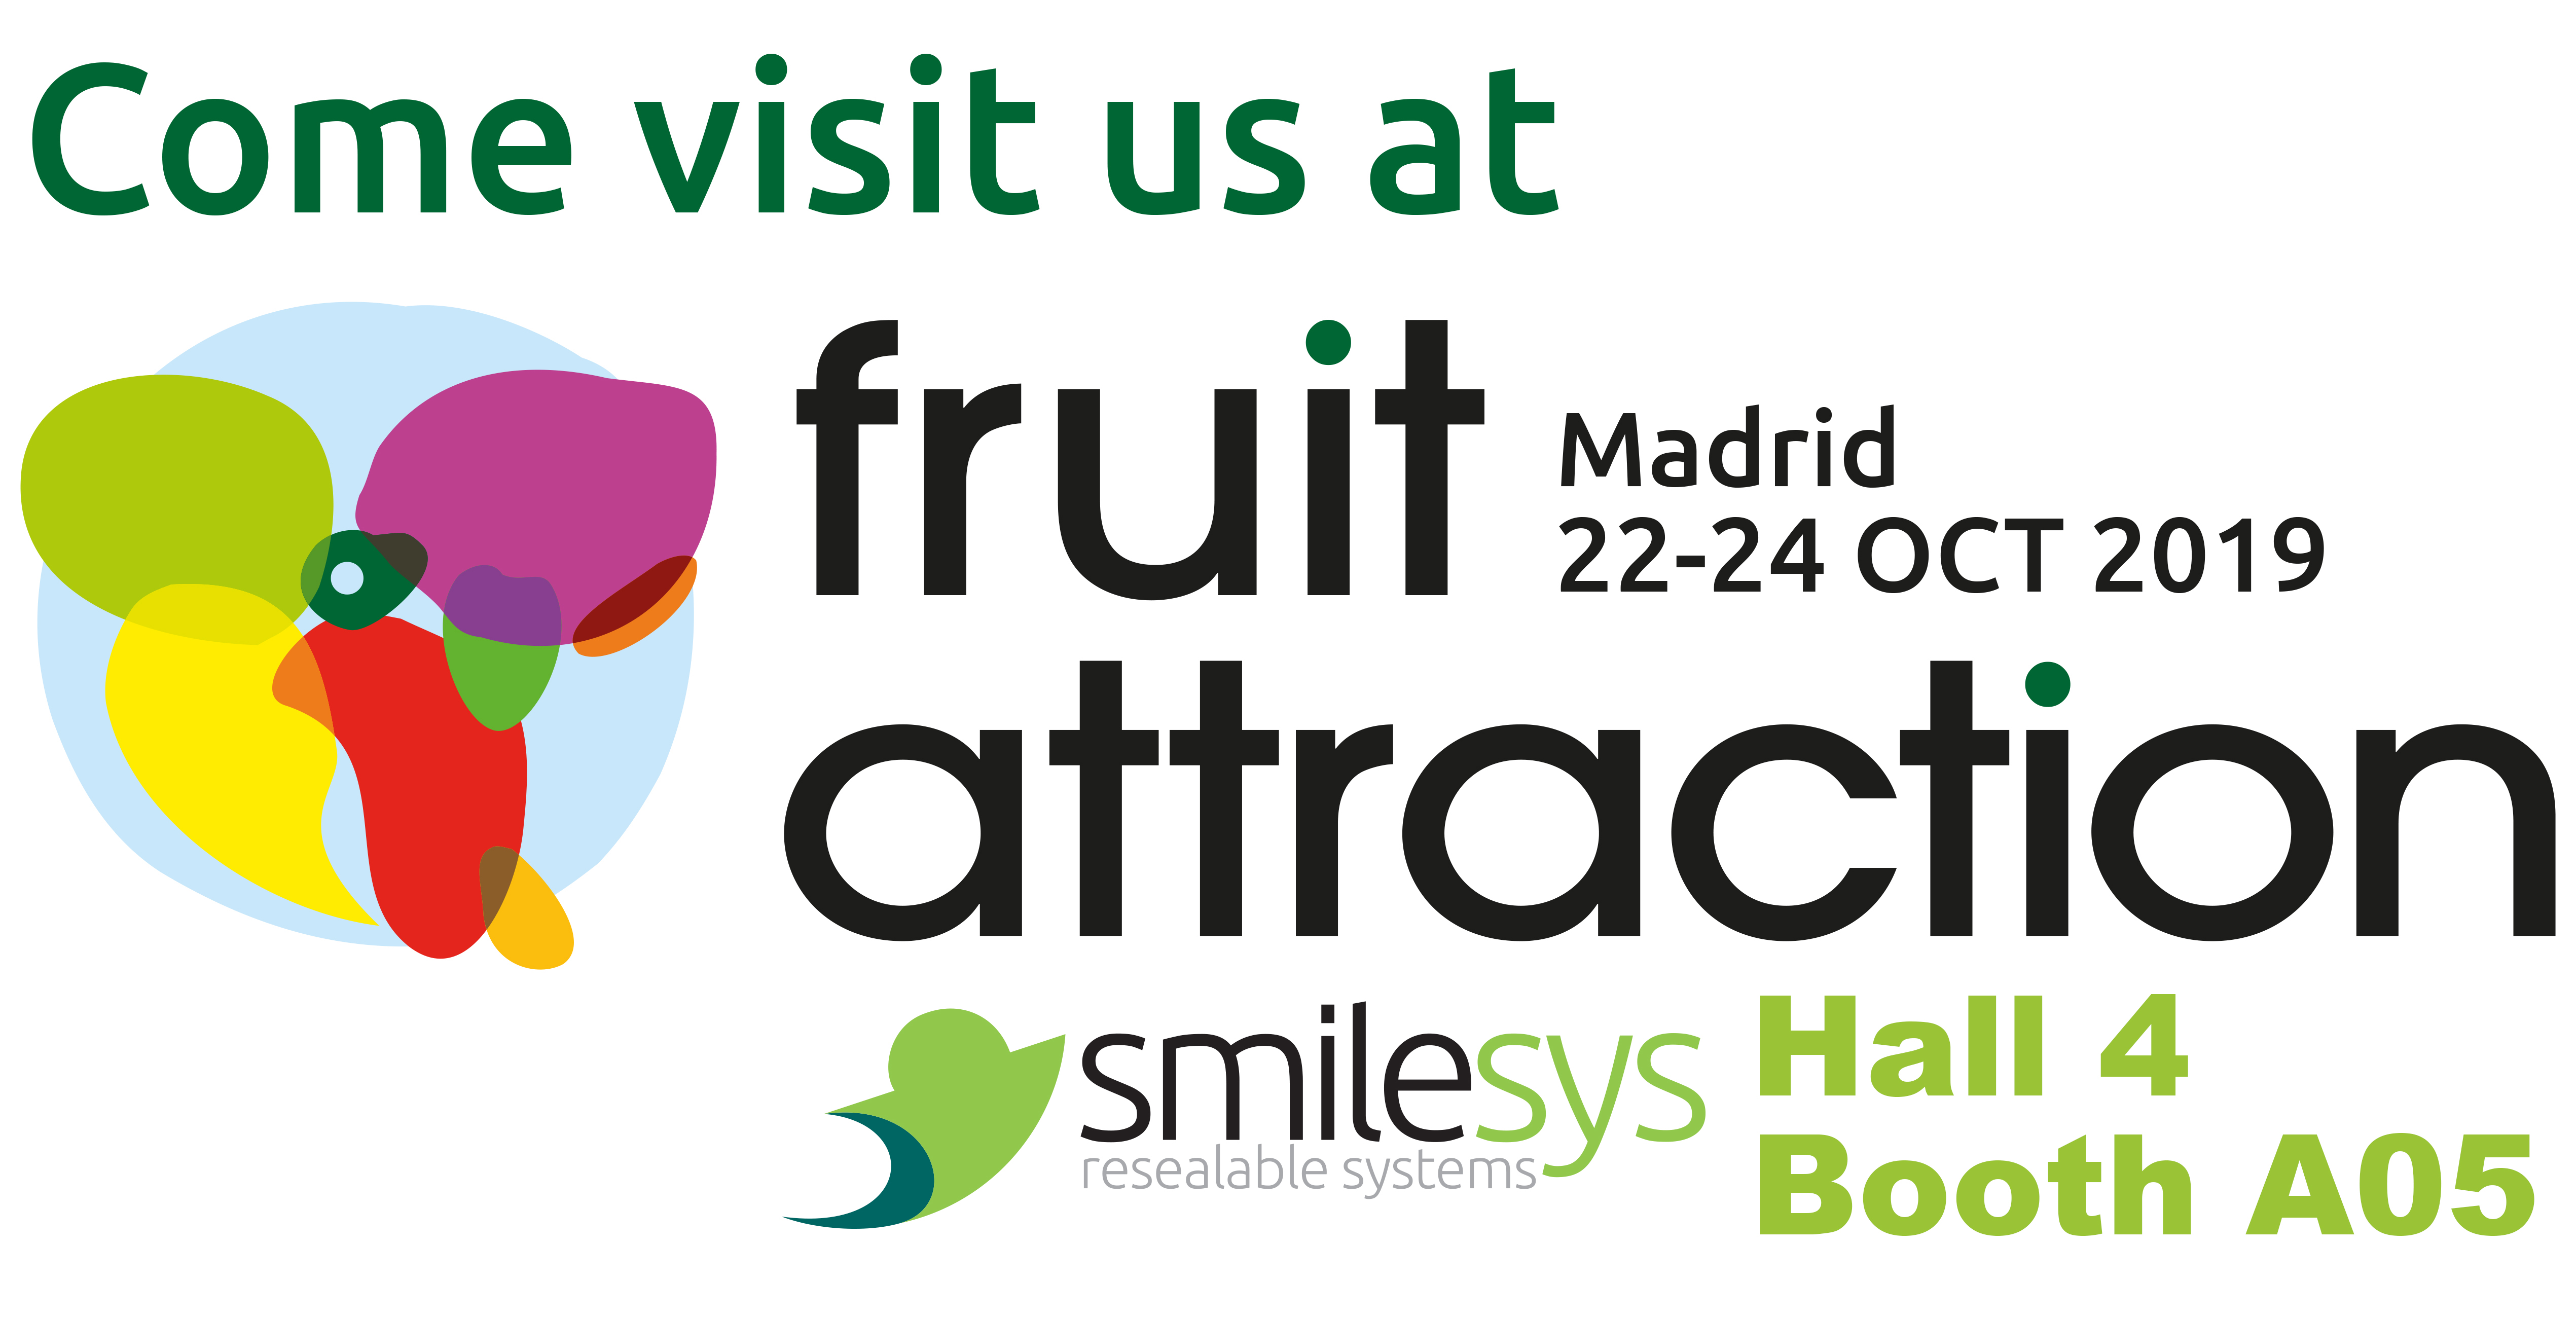 Smilesys sarà presente alla fiera internazionale Fruit Attraction 2019 Madrid